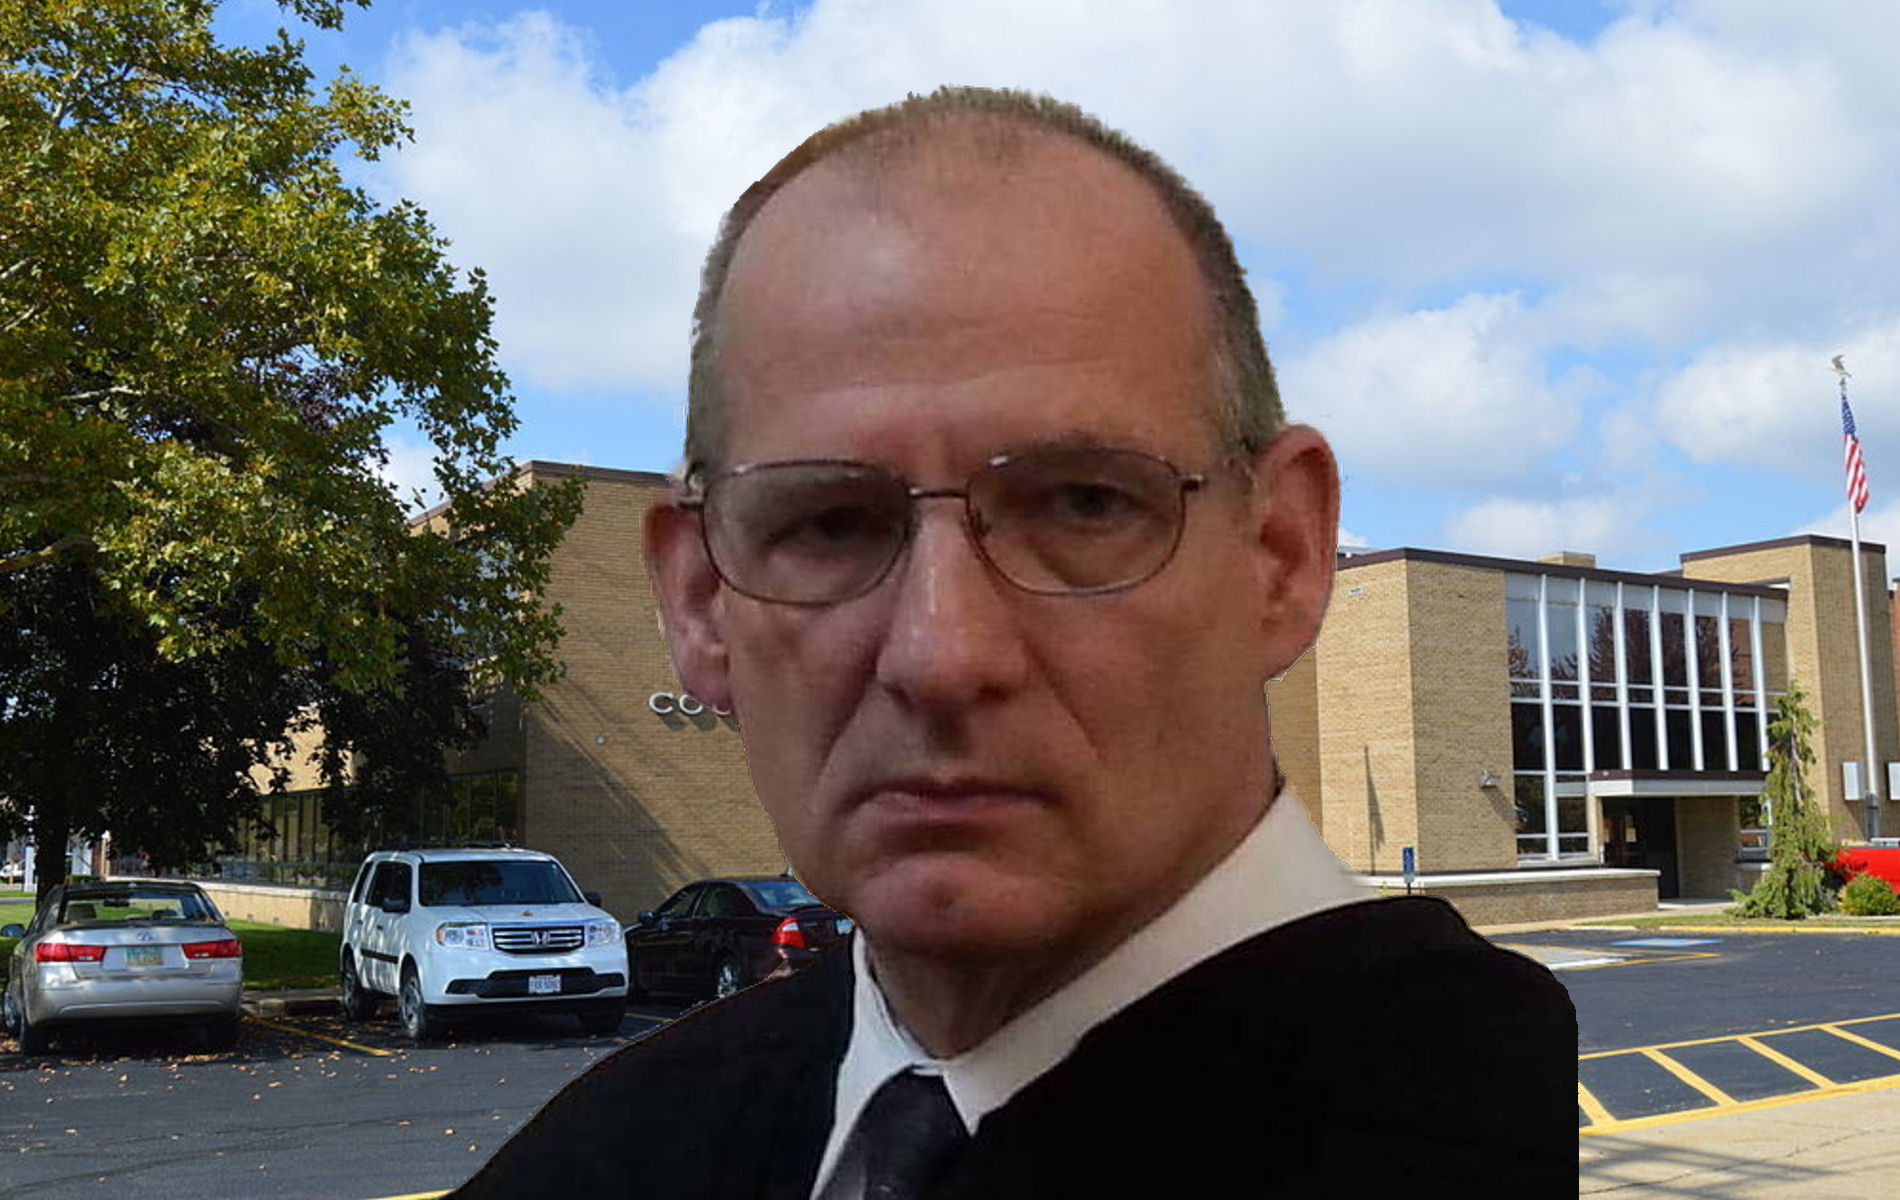 david schroeder ashtabula county court of common plese judge